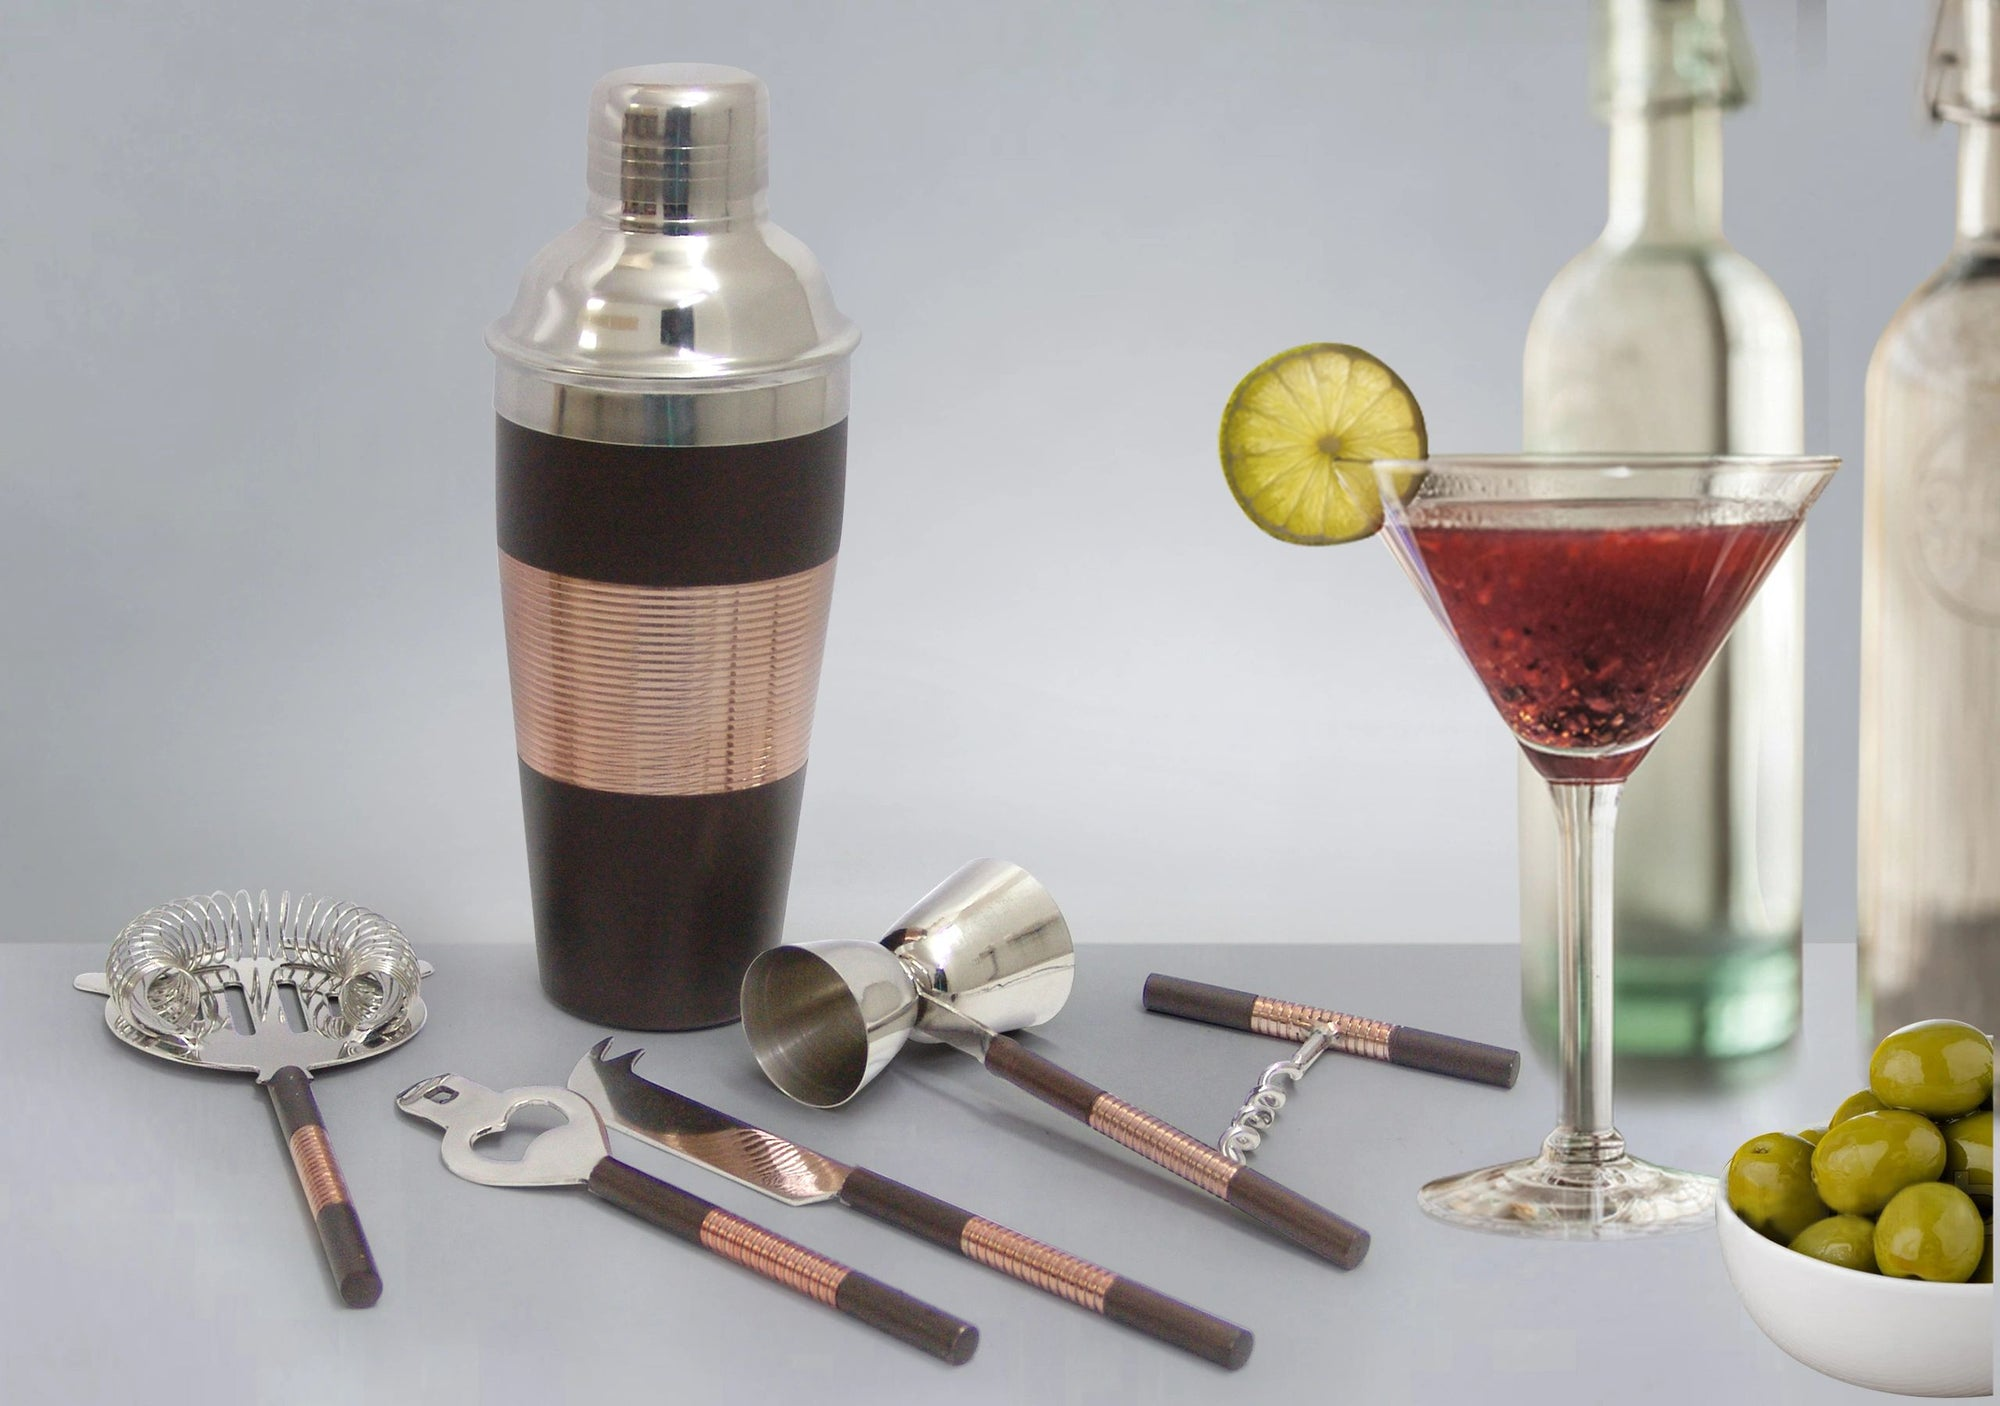 TG-CS-161CB Ribbed Cocktail shaker copper/black two tone finish